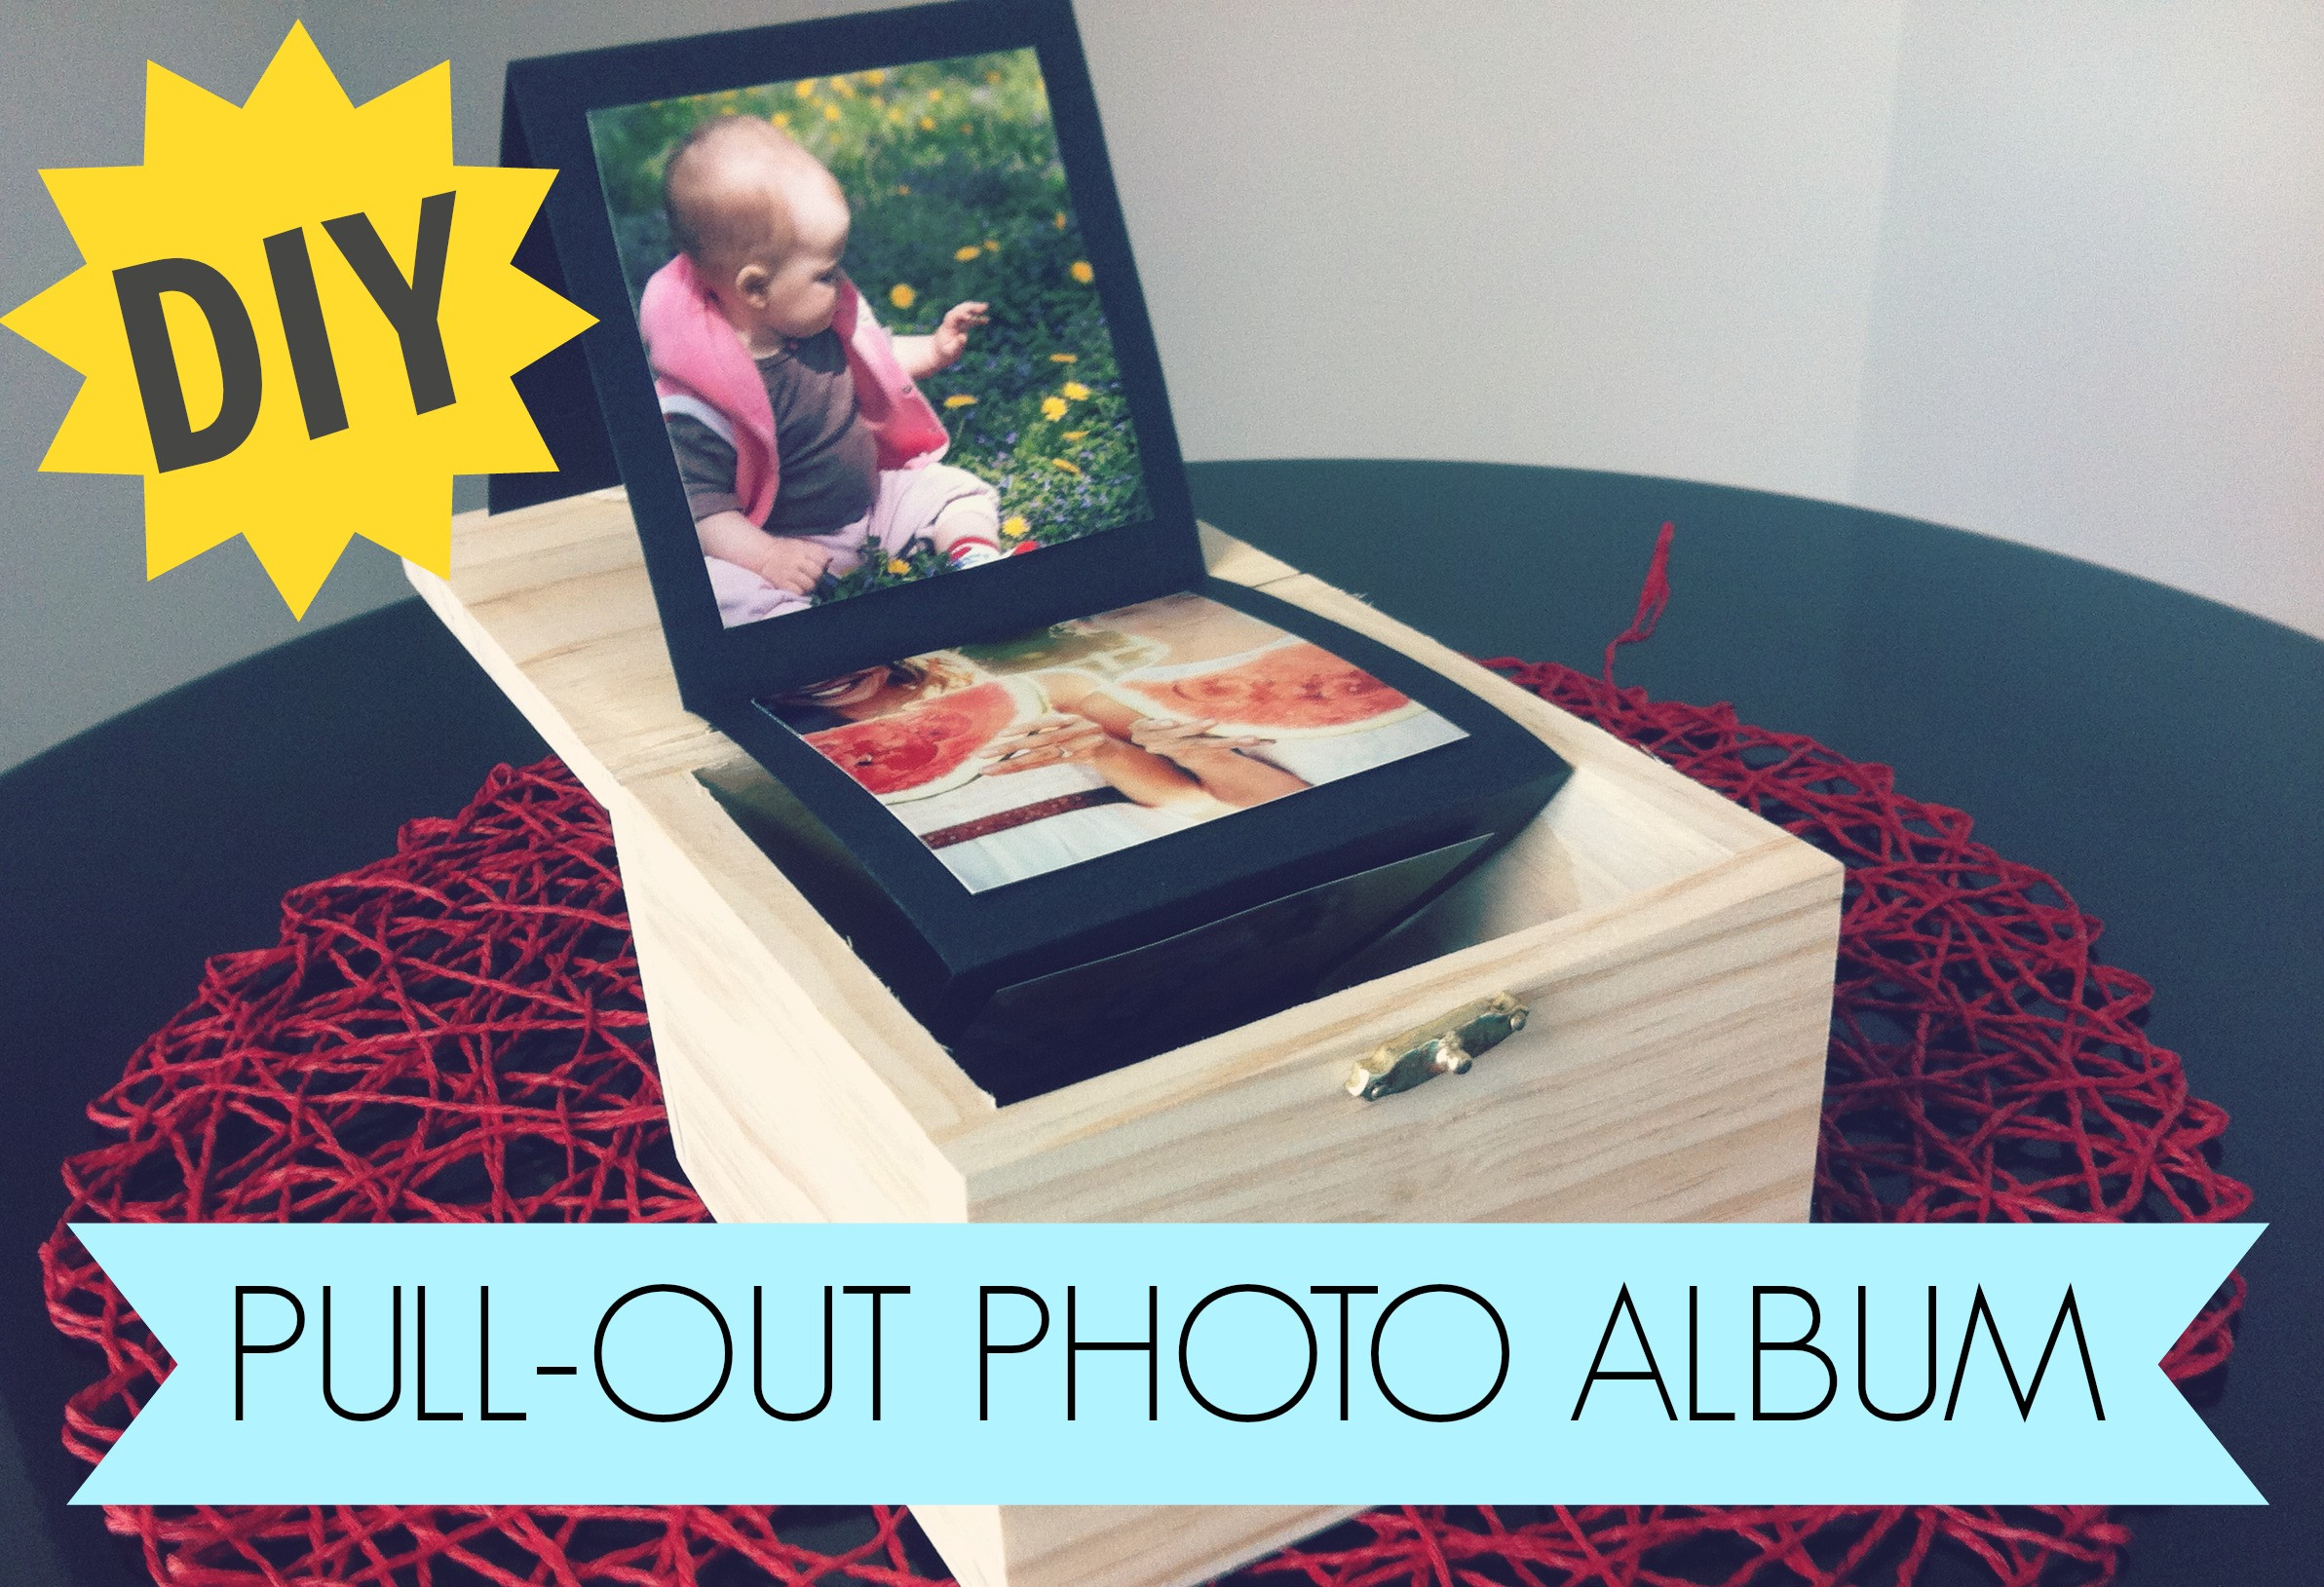 Best ideas about DIY Photo Album . Save or Pin DIY Pull Out Album Now.